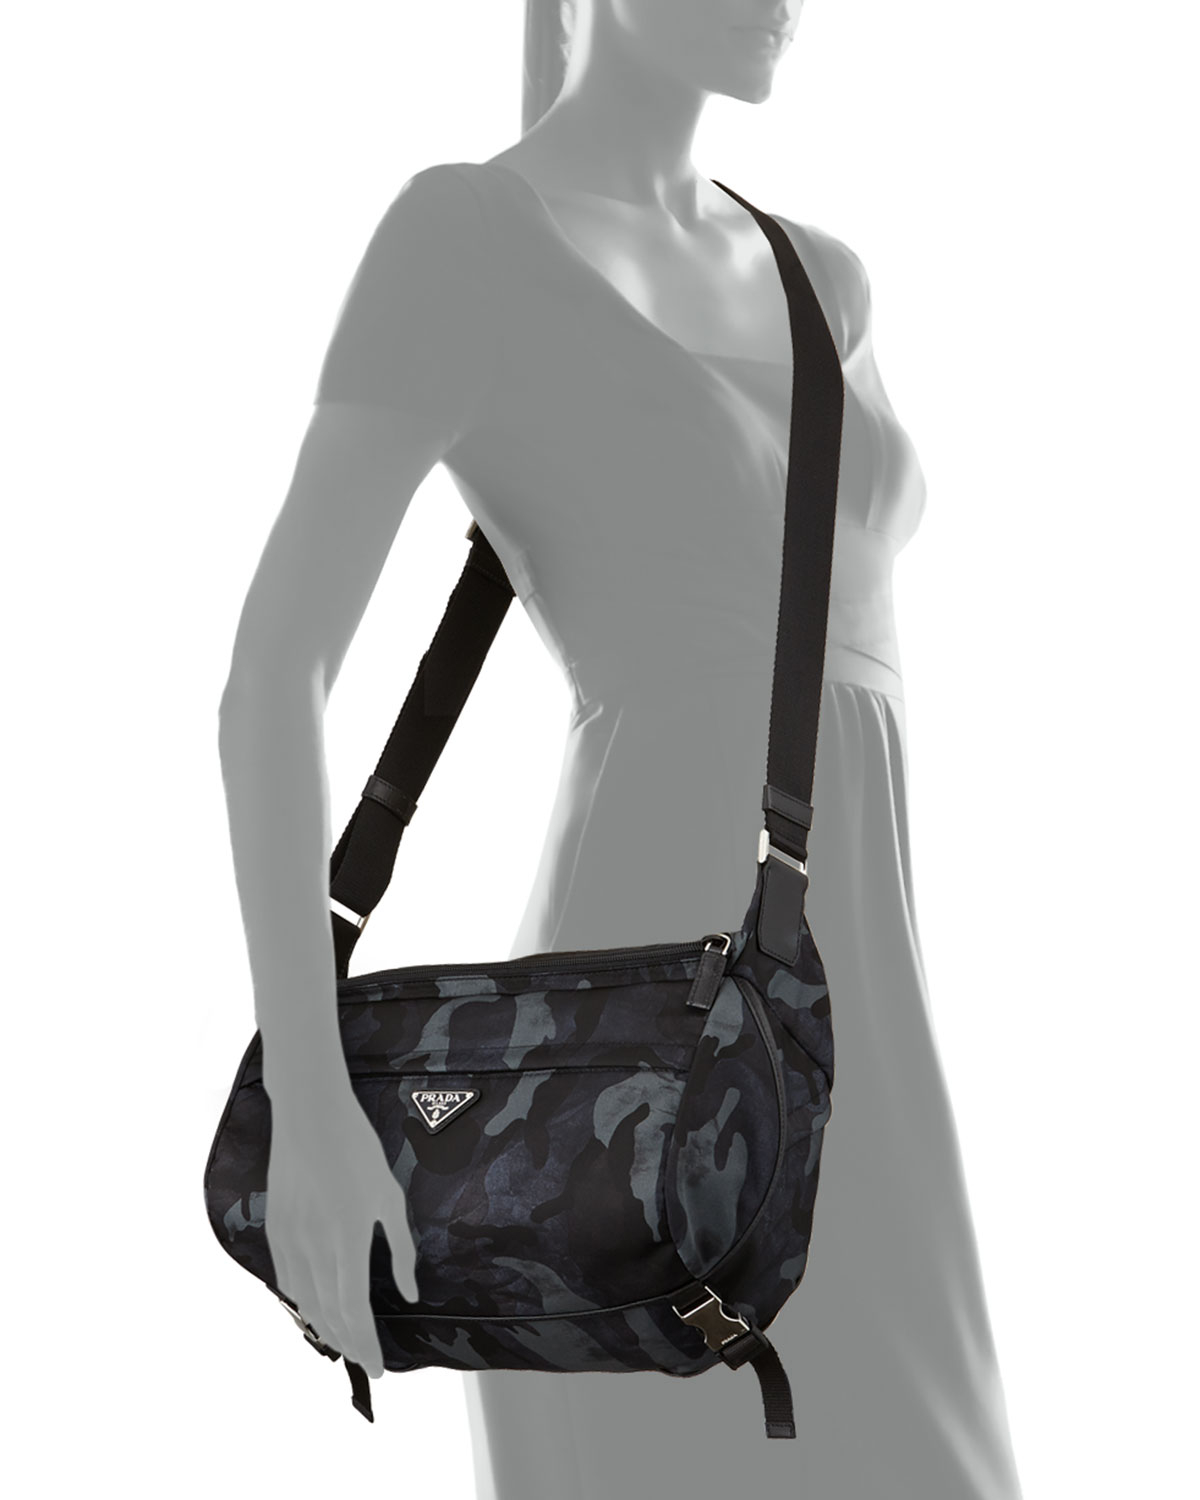 c67398bece10c3 discount prada mens large nylon messenger bag in black for men lyst 94520  38e30; sale lyst prada camo nylon medium messenger bag in blue for men  a95c3 d0b21